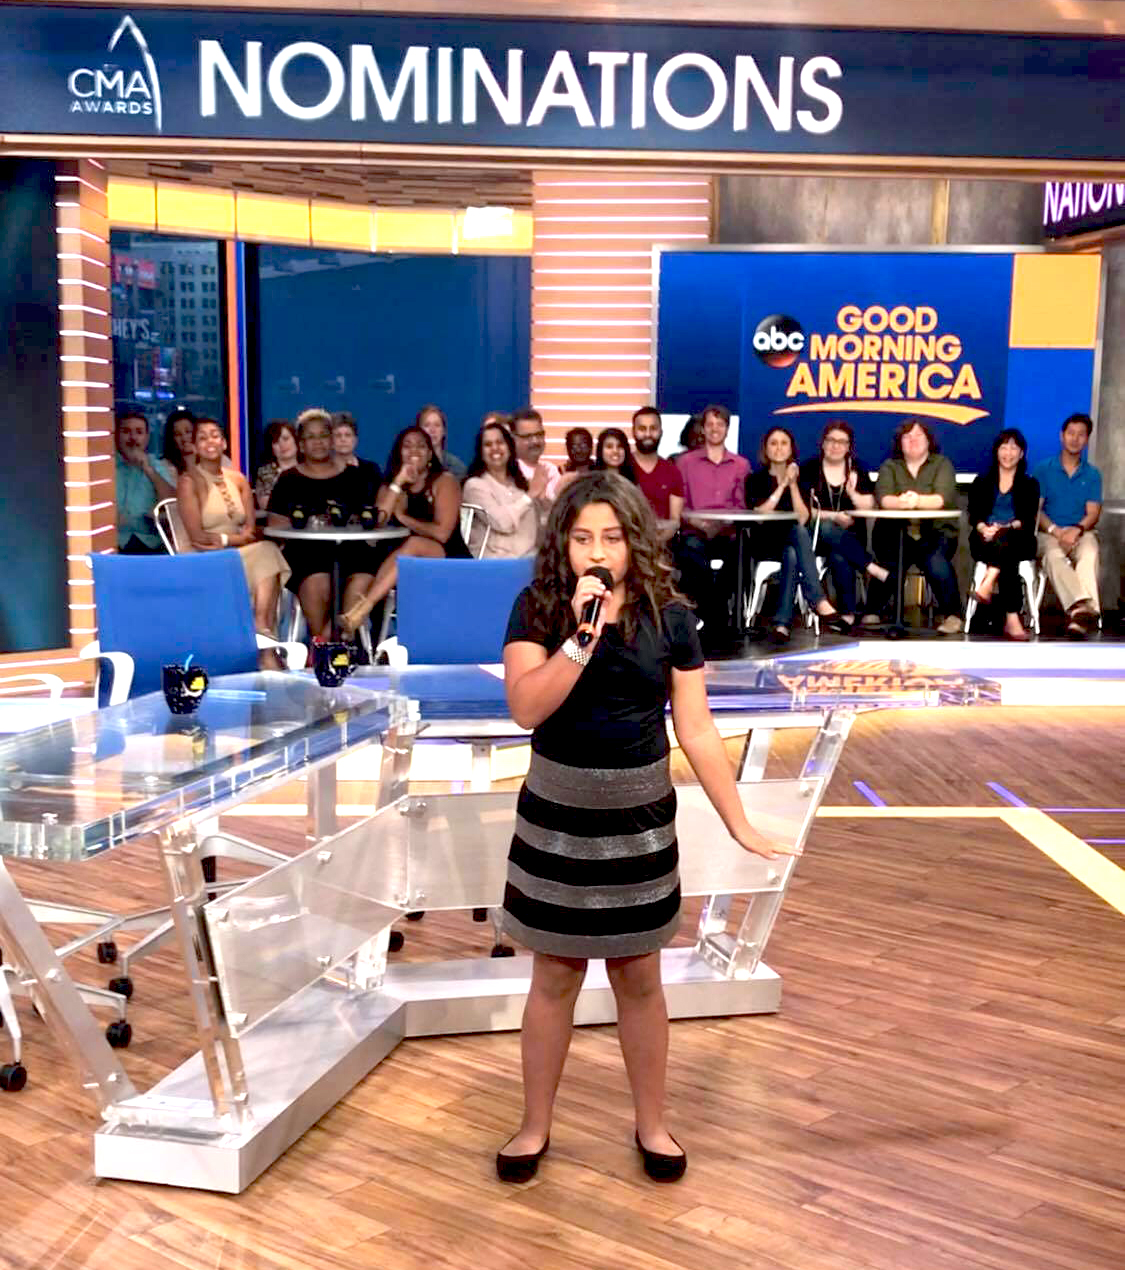 Young Osage singer wows crowd at Good Morning America studio